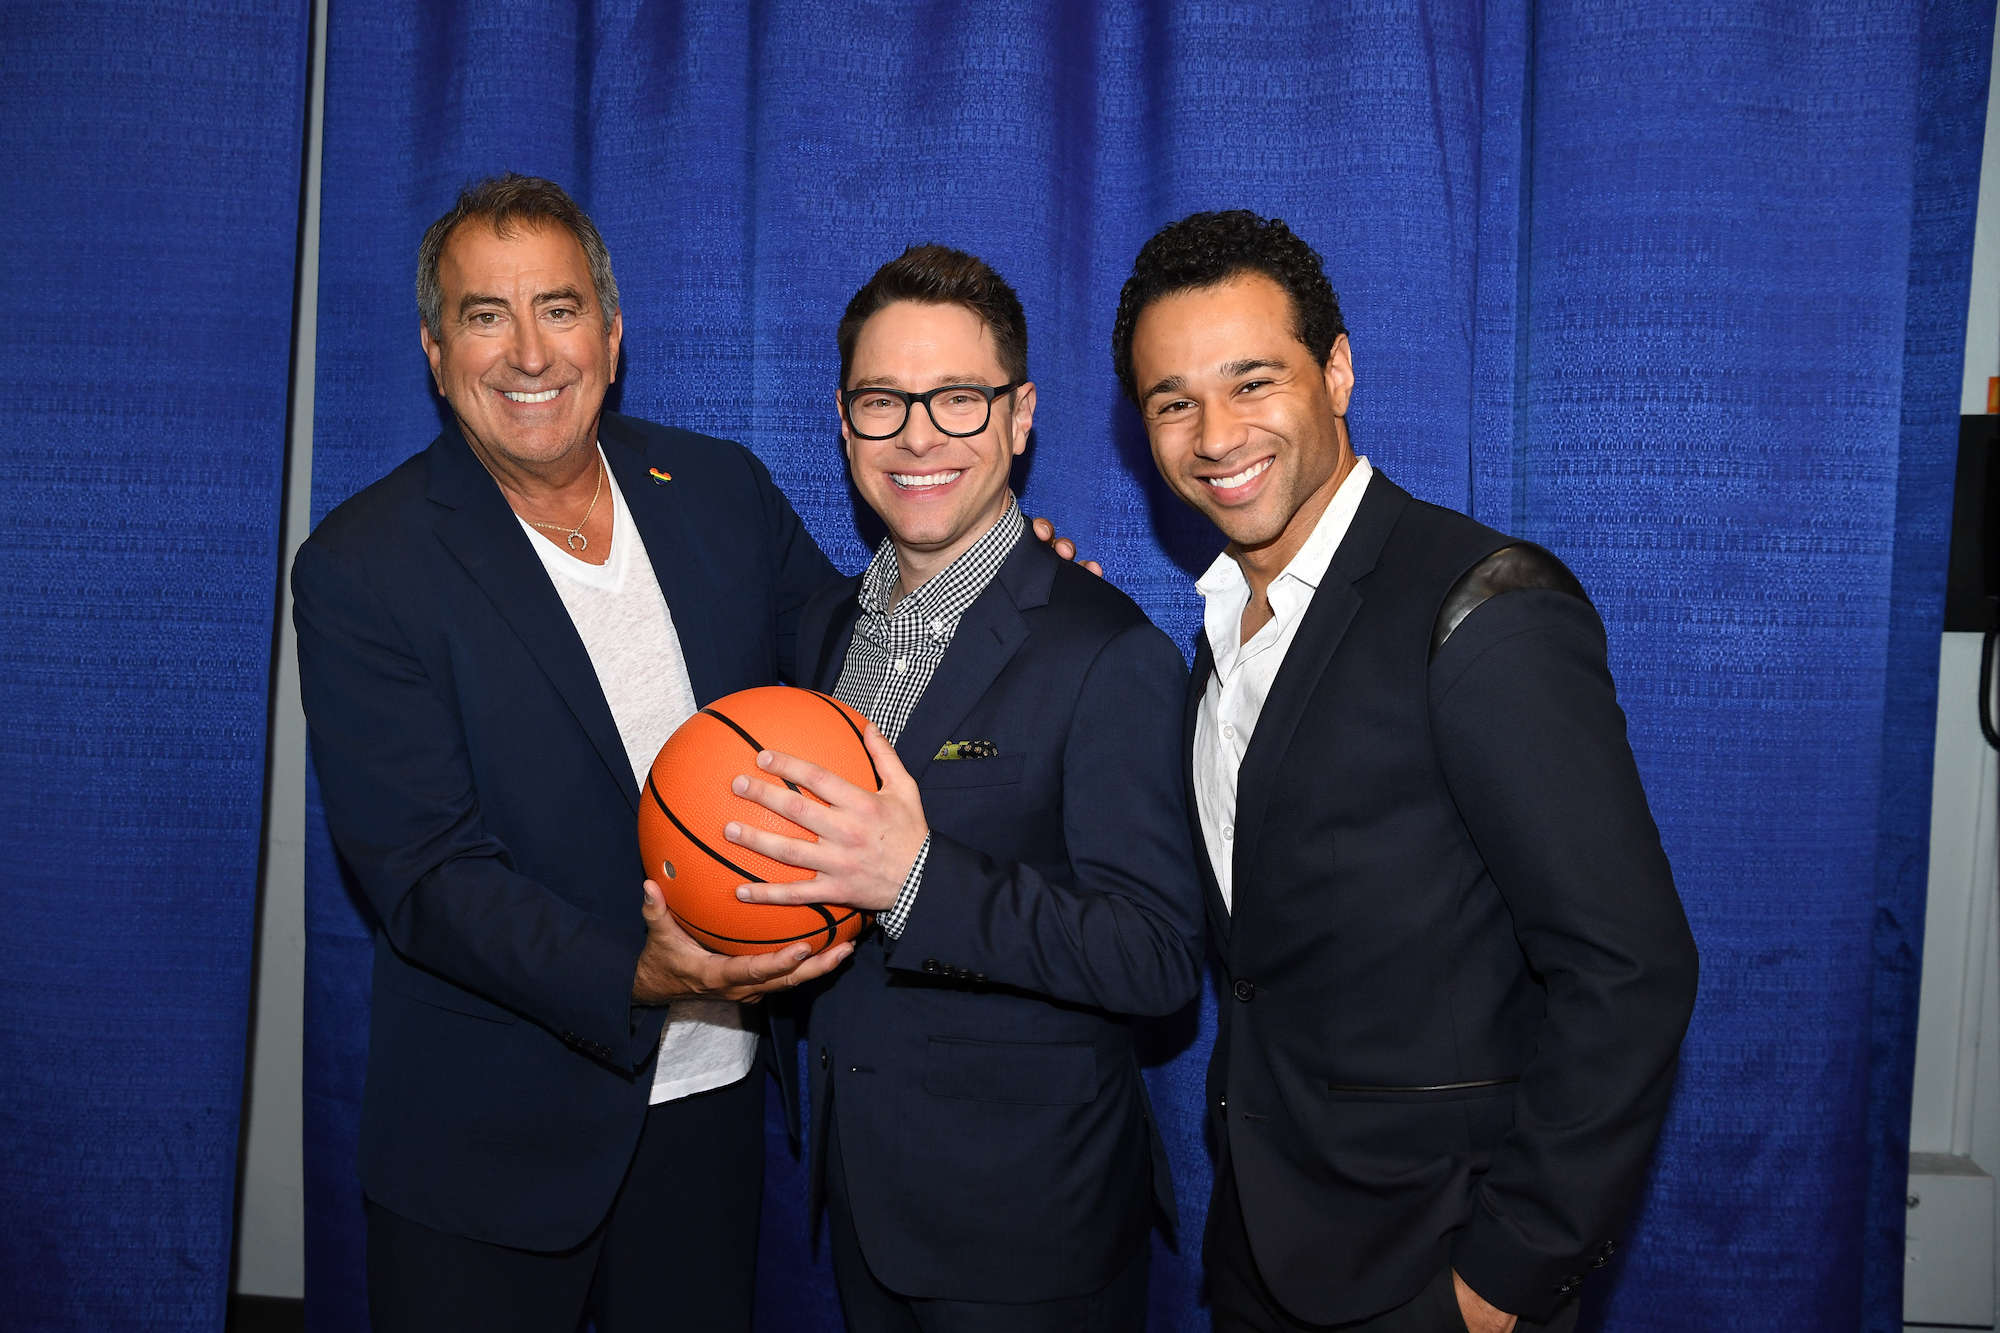 Kenny Ortega (creator and director of 'High School Musical') with Tim Federle (the showrunner for HSMTMTS) and Corbin Bleu at the D23 EXPO 2019.